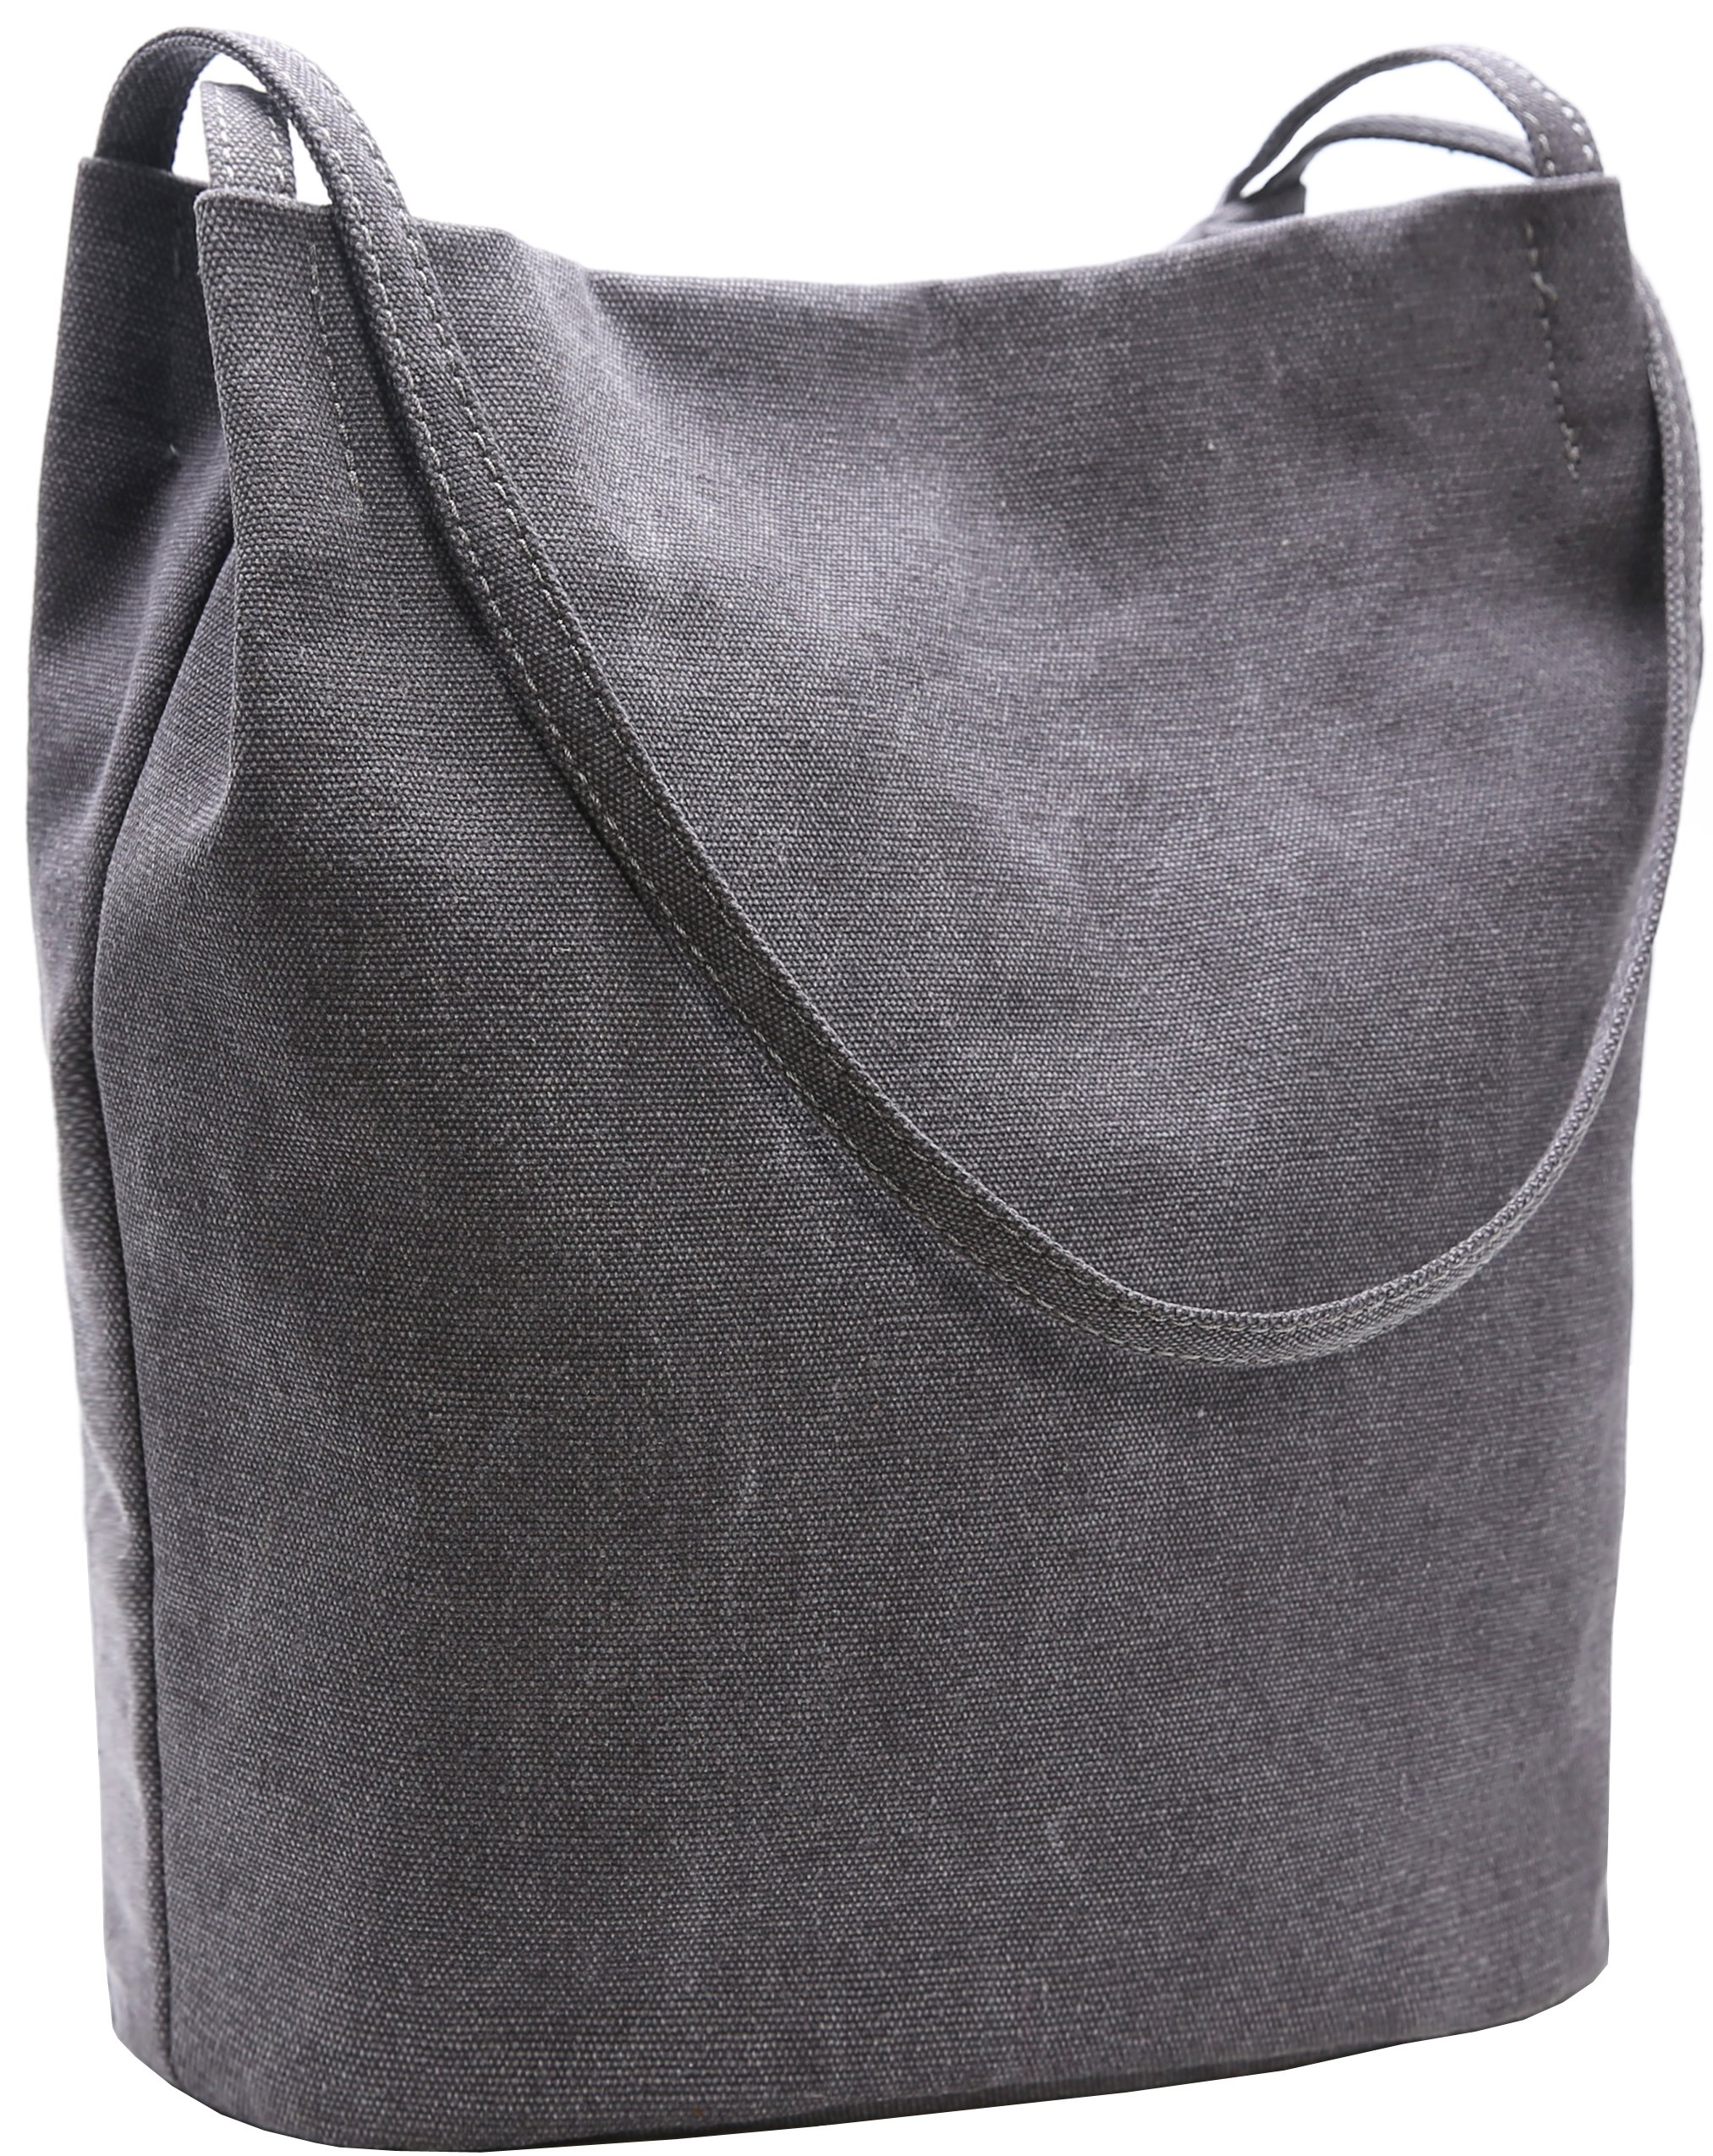 Bucket Bag Iswee Canvas Handbags Shoulder Bag Hobo Casual Tote for Women (Dark Gray)